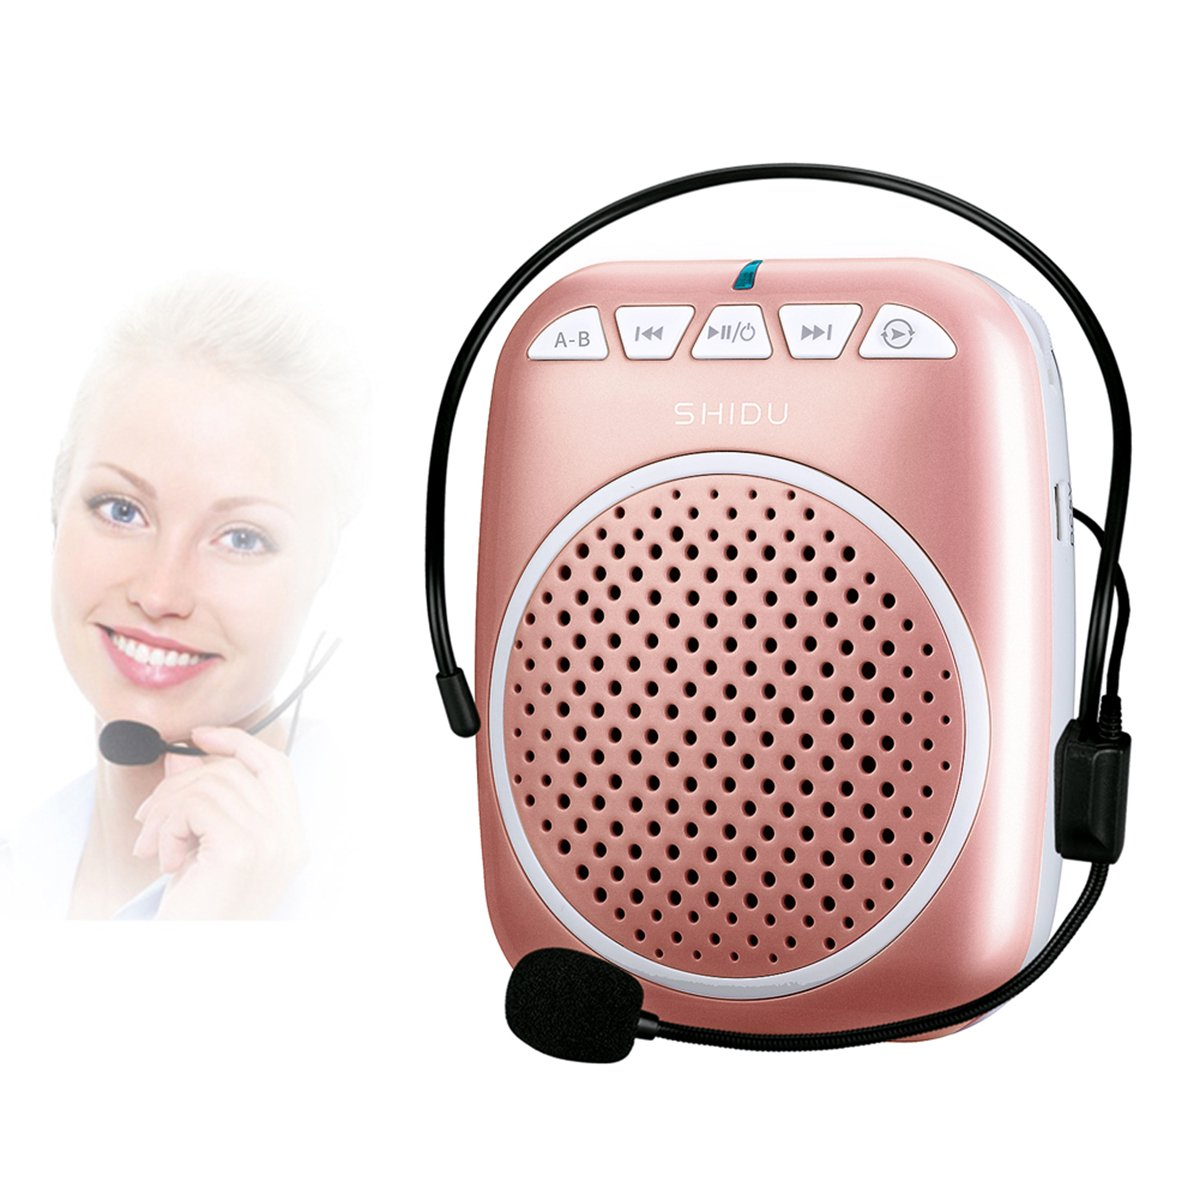 Portable Voice Amplifier, SHIDU S308 Ultra-Clear Rechargeable Amplifiers, Powerful Compact & Comfortable Wired Headset Microphone for Teachers, Kindergarener, Tour Guides, Coaches and More (Rose Gold)